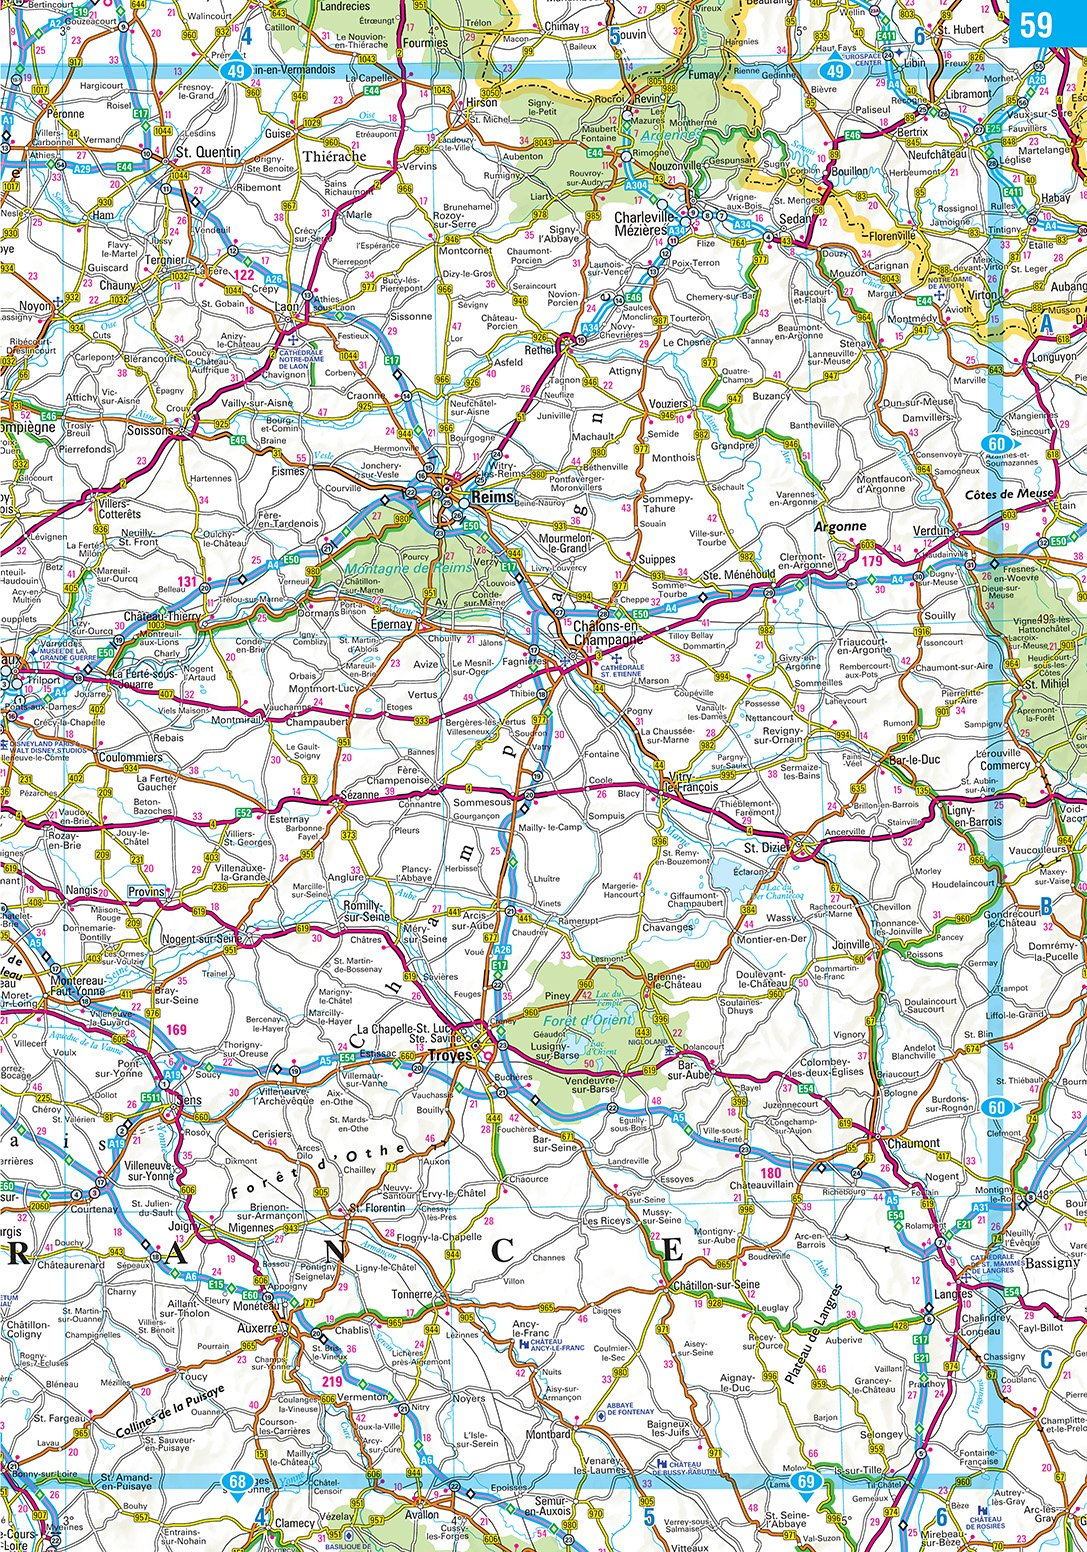 2020 Philip's Big Road Atlas Europe: (A3 Spiral binding) (Philip's Road Atlases) 7